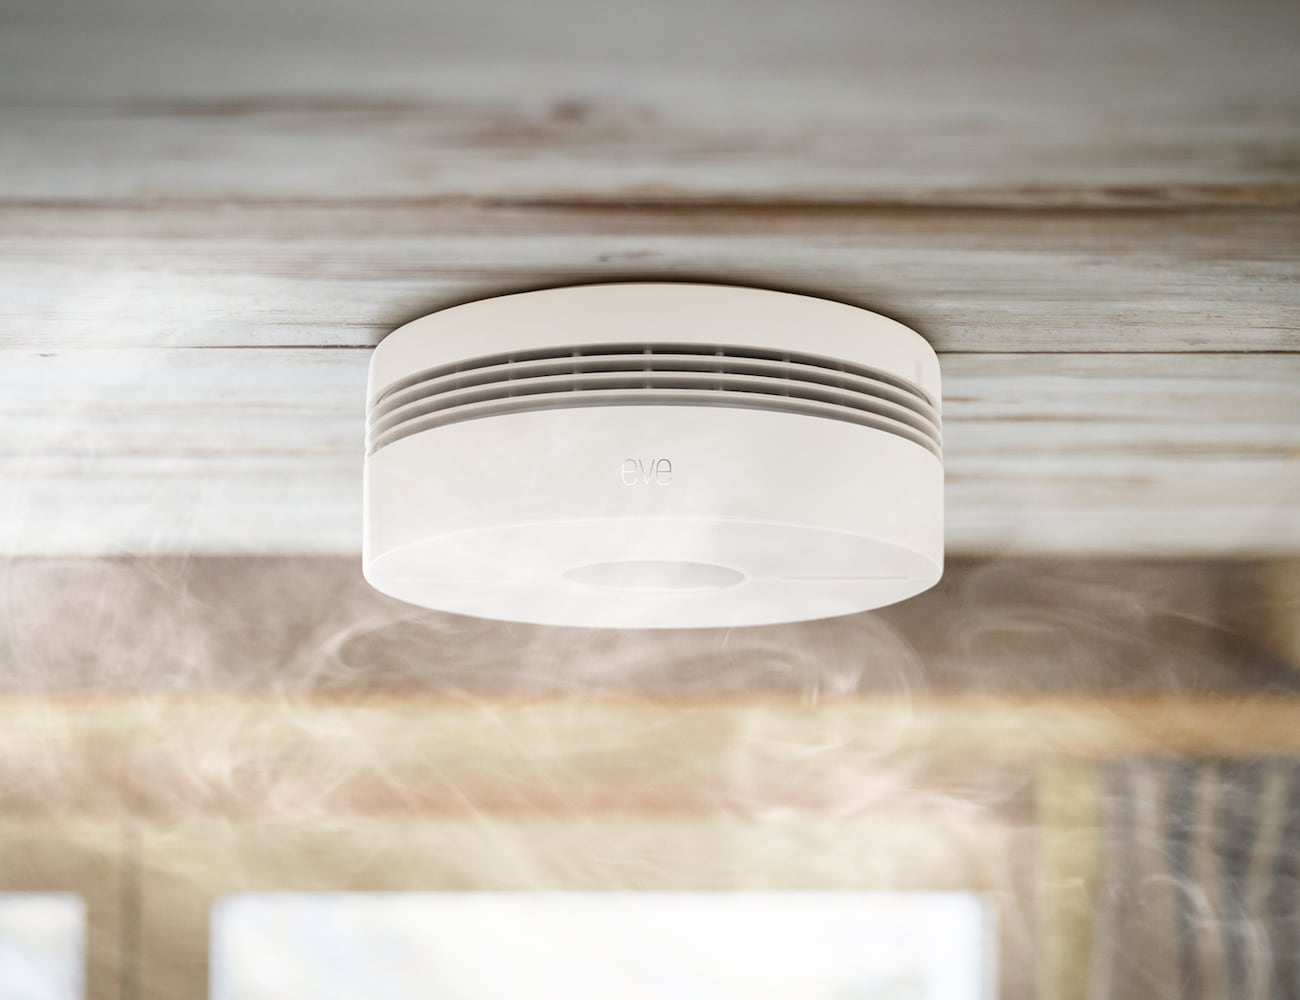 Eve Smoke Connected Smoke Detector detects fires of all sizes